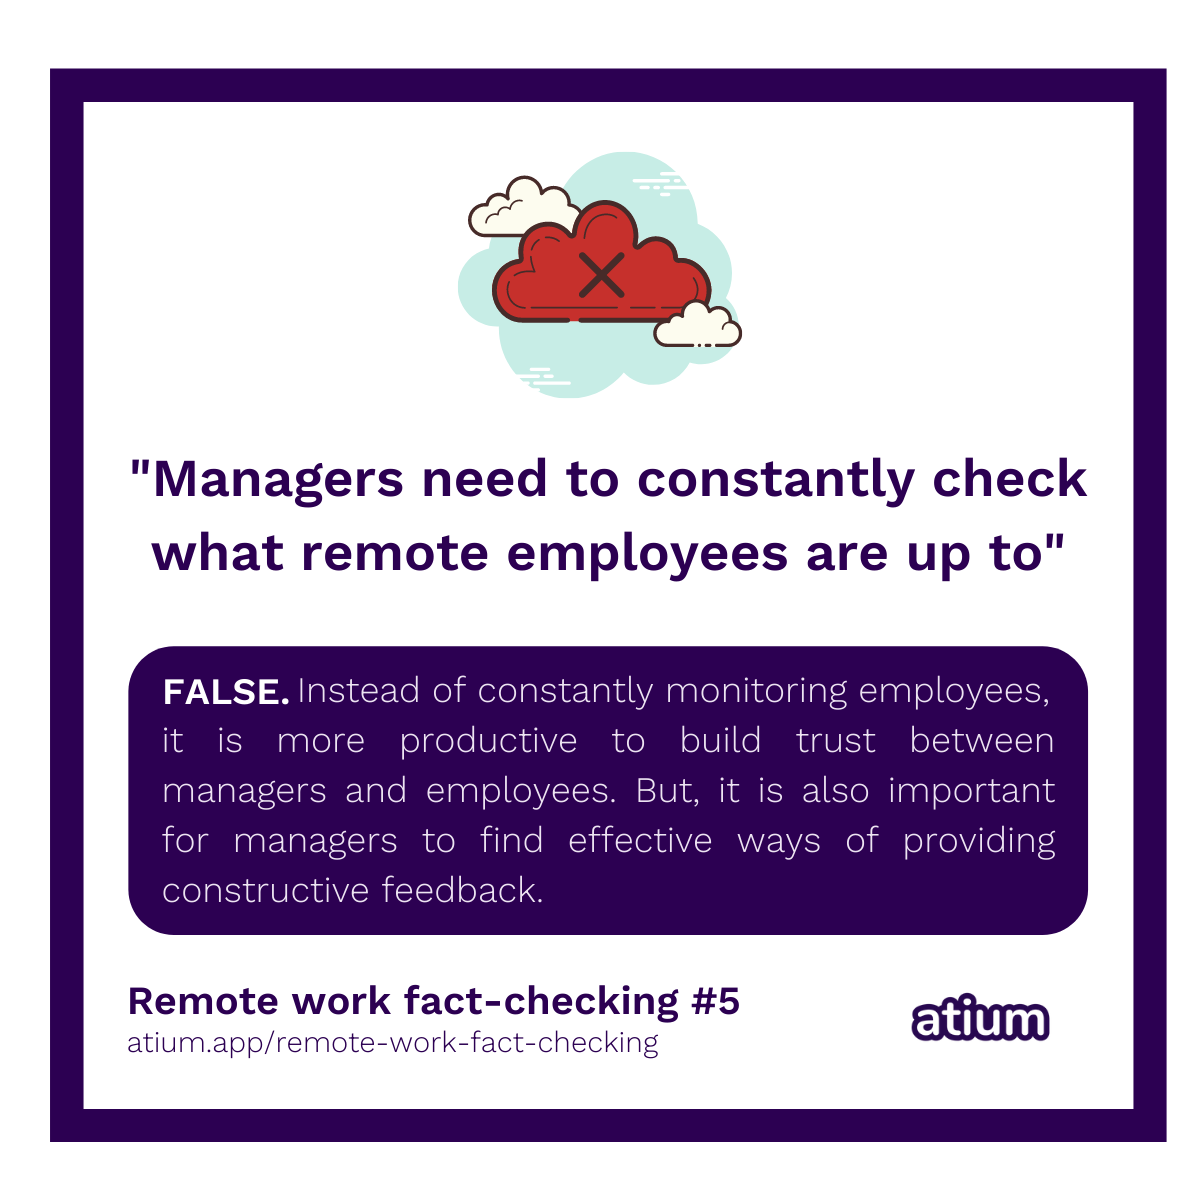 Managers need to constantly check what remote employees are up to